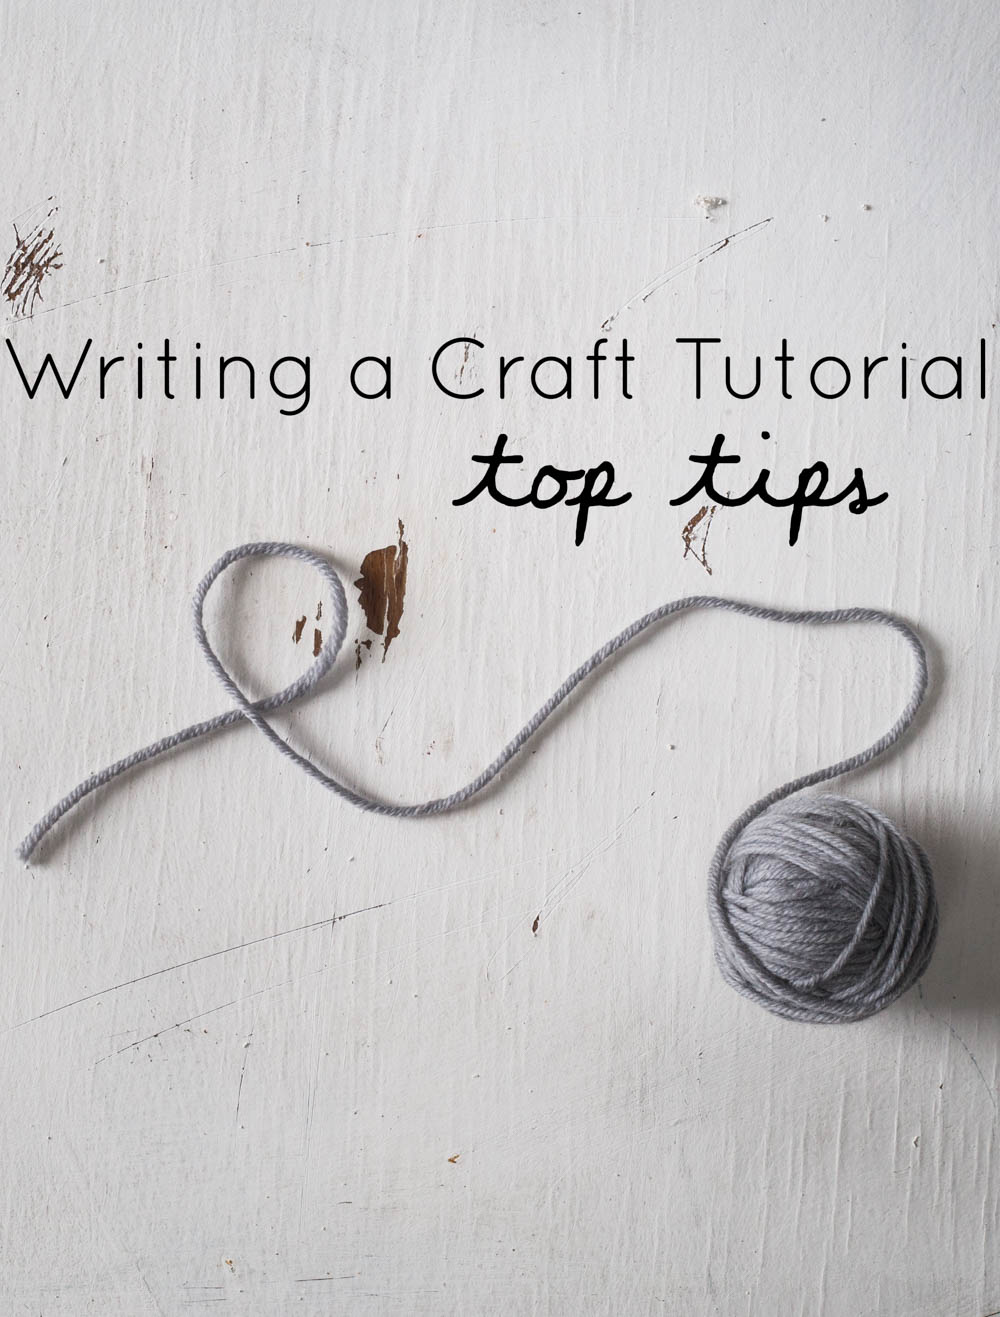 3 Steps to Tutorial Writing for Freelance Writers